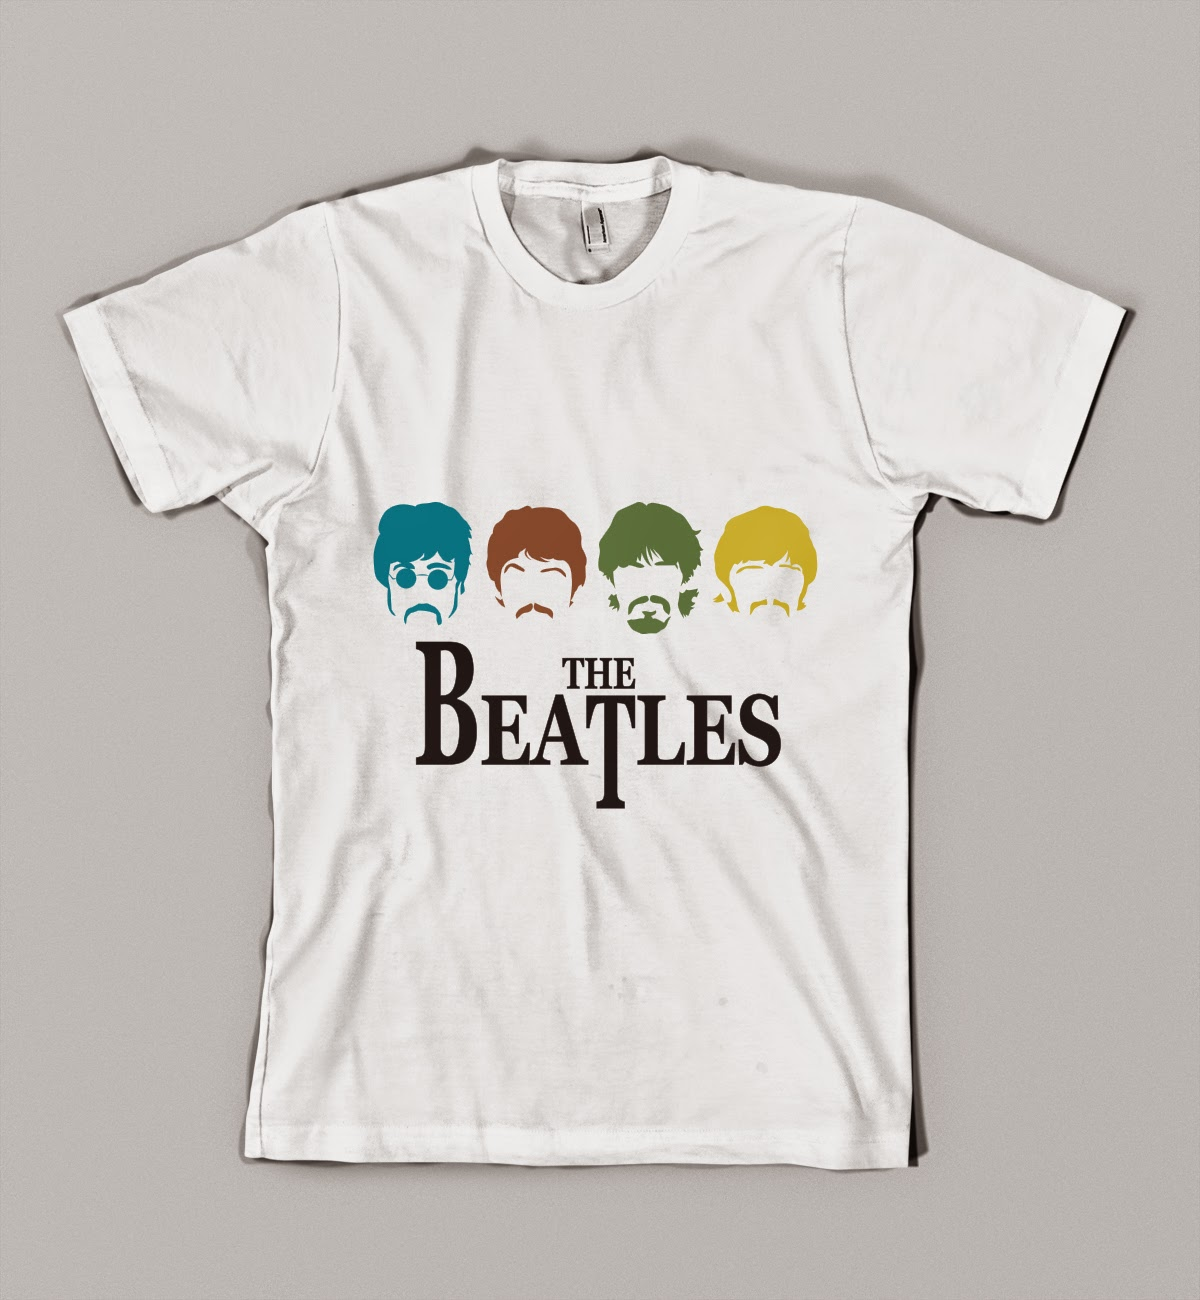 http://www.graphyness.co.il/#!product/prd1/2125773675/1053.-the-beatles